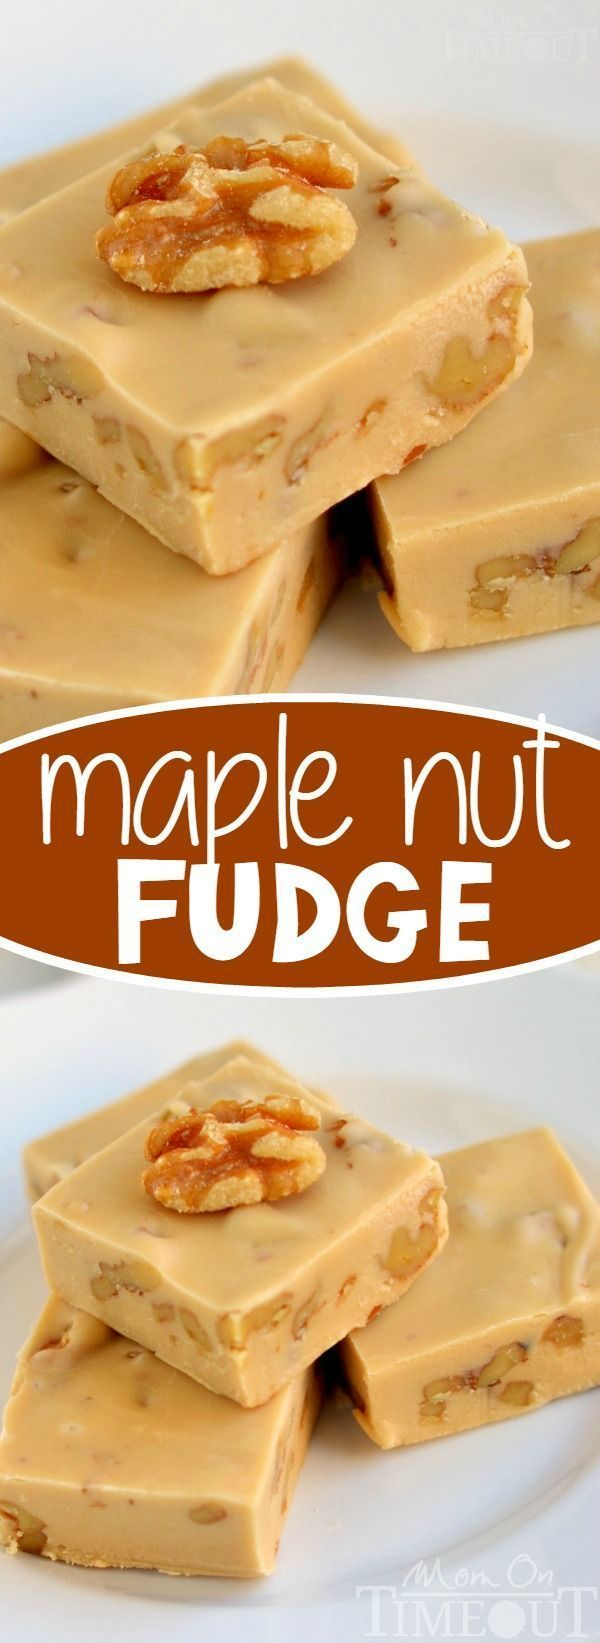 This Creamy Maple Nut Fudge is a breeze to make! Crunchy toasted walnuts add amazing texture and flavor to this decadent fudge recipe!